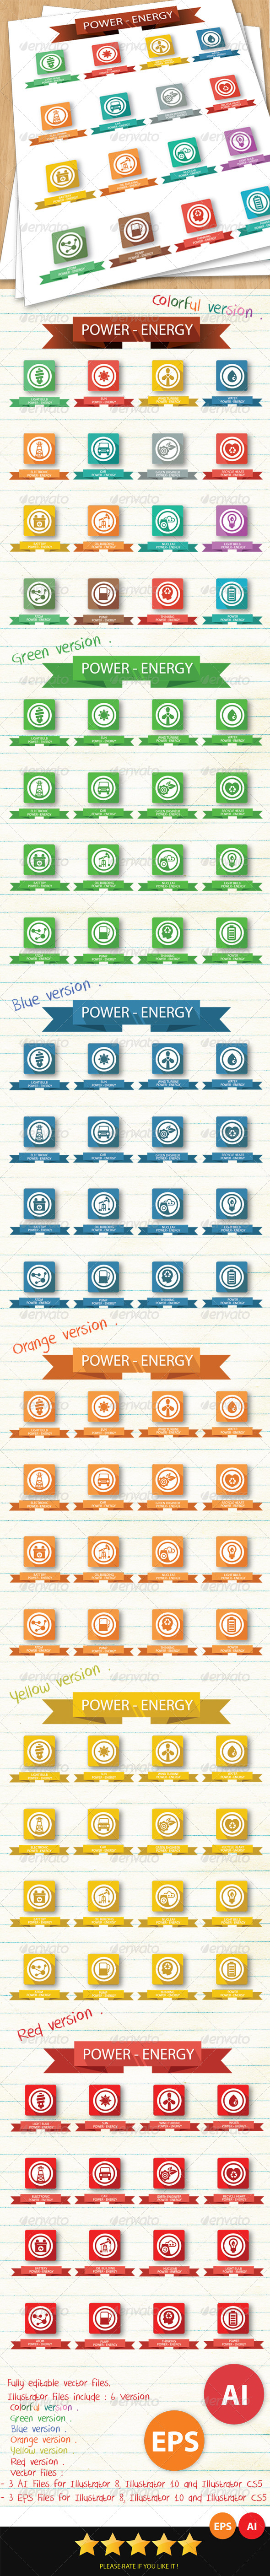 GraphicRiver Power & Energy Icons 6426453